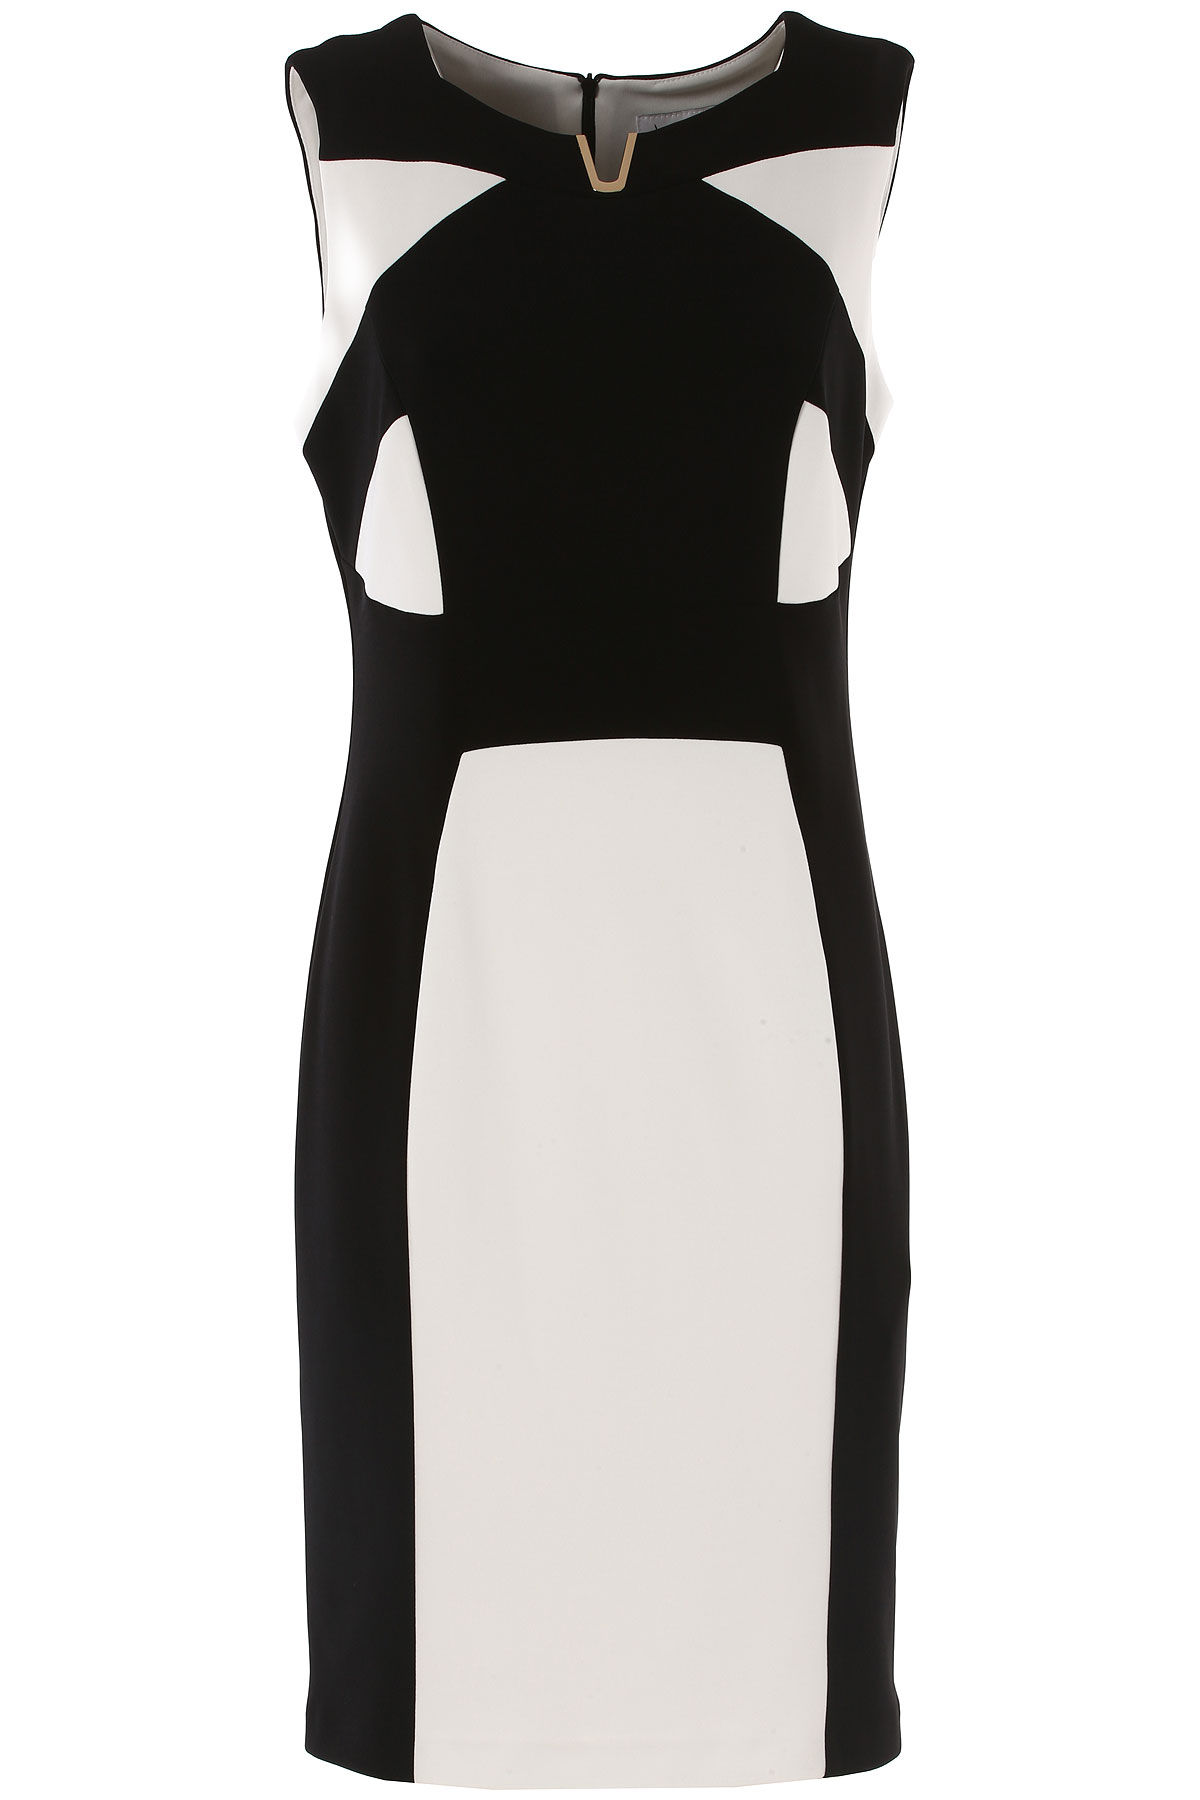 Joseph Ribkoff Dress for Women, Evening Cocktail Party On Sale, Black, polyester, 2017, USA 8 -- IT 42 USA 10 -- IT 44 USA 12 -- IT 46 USA 14 -- IT 48 USA 16 - IT 50 USA-409103